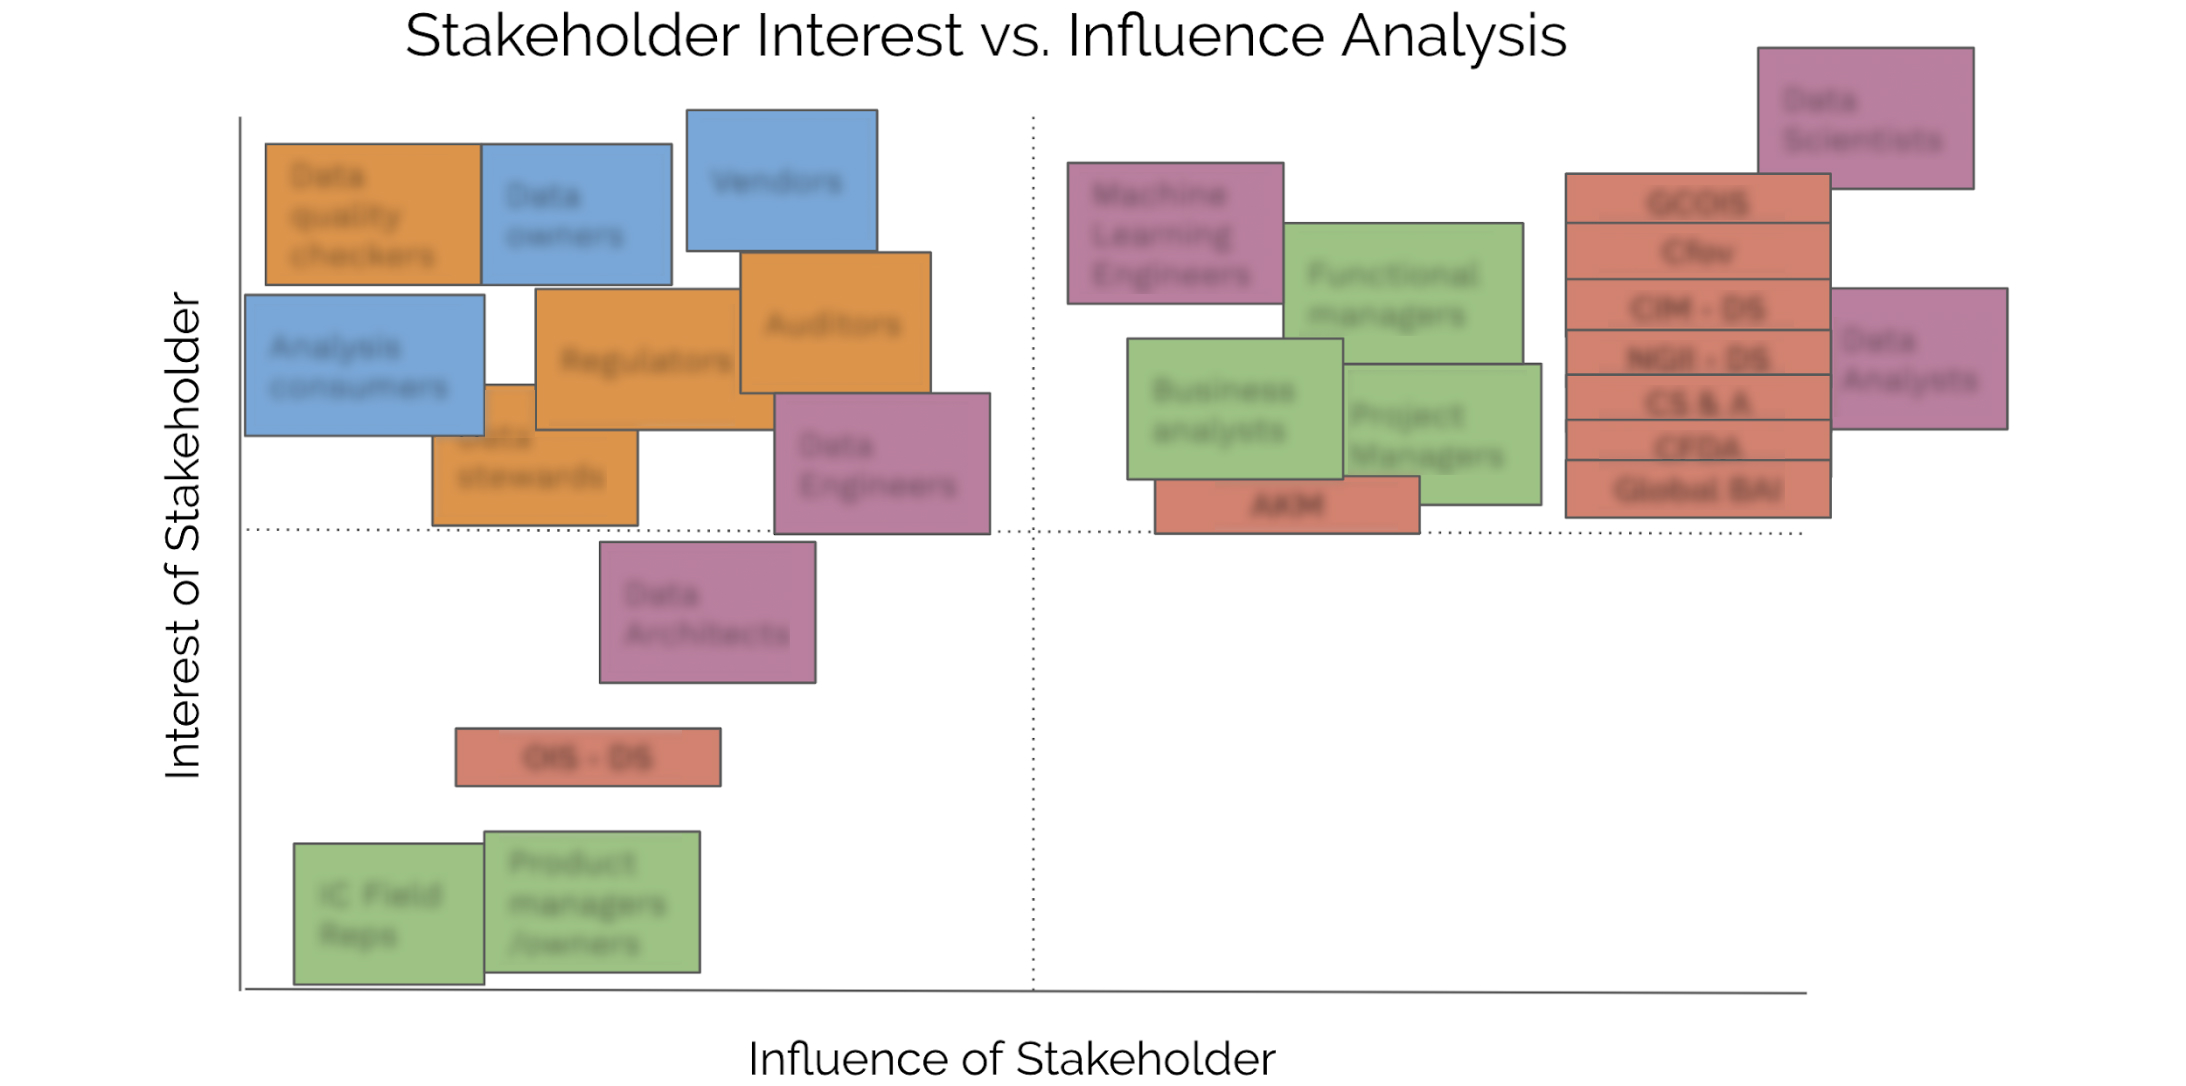 Influence vs Interest outcome